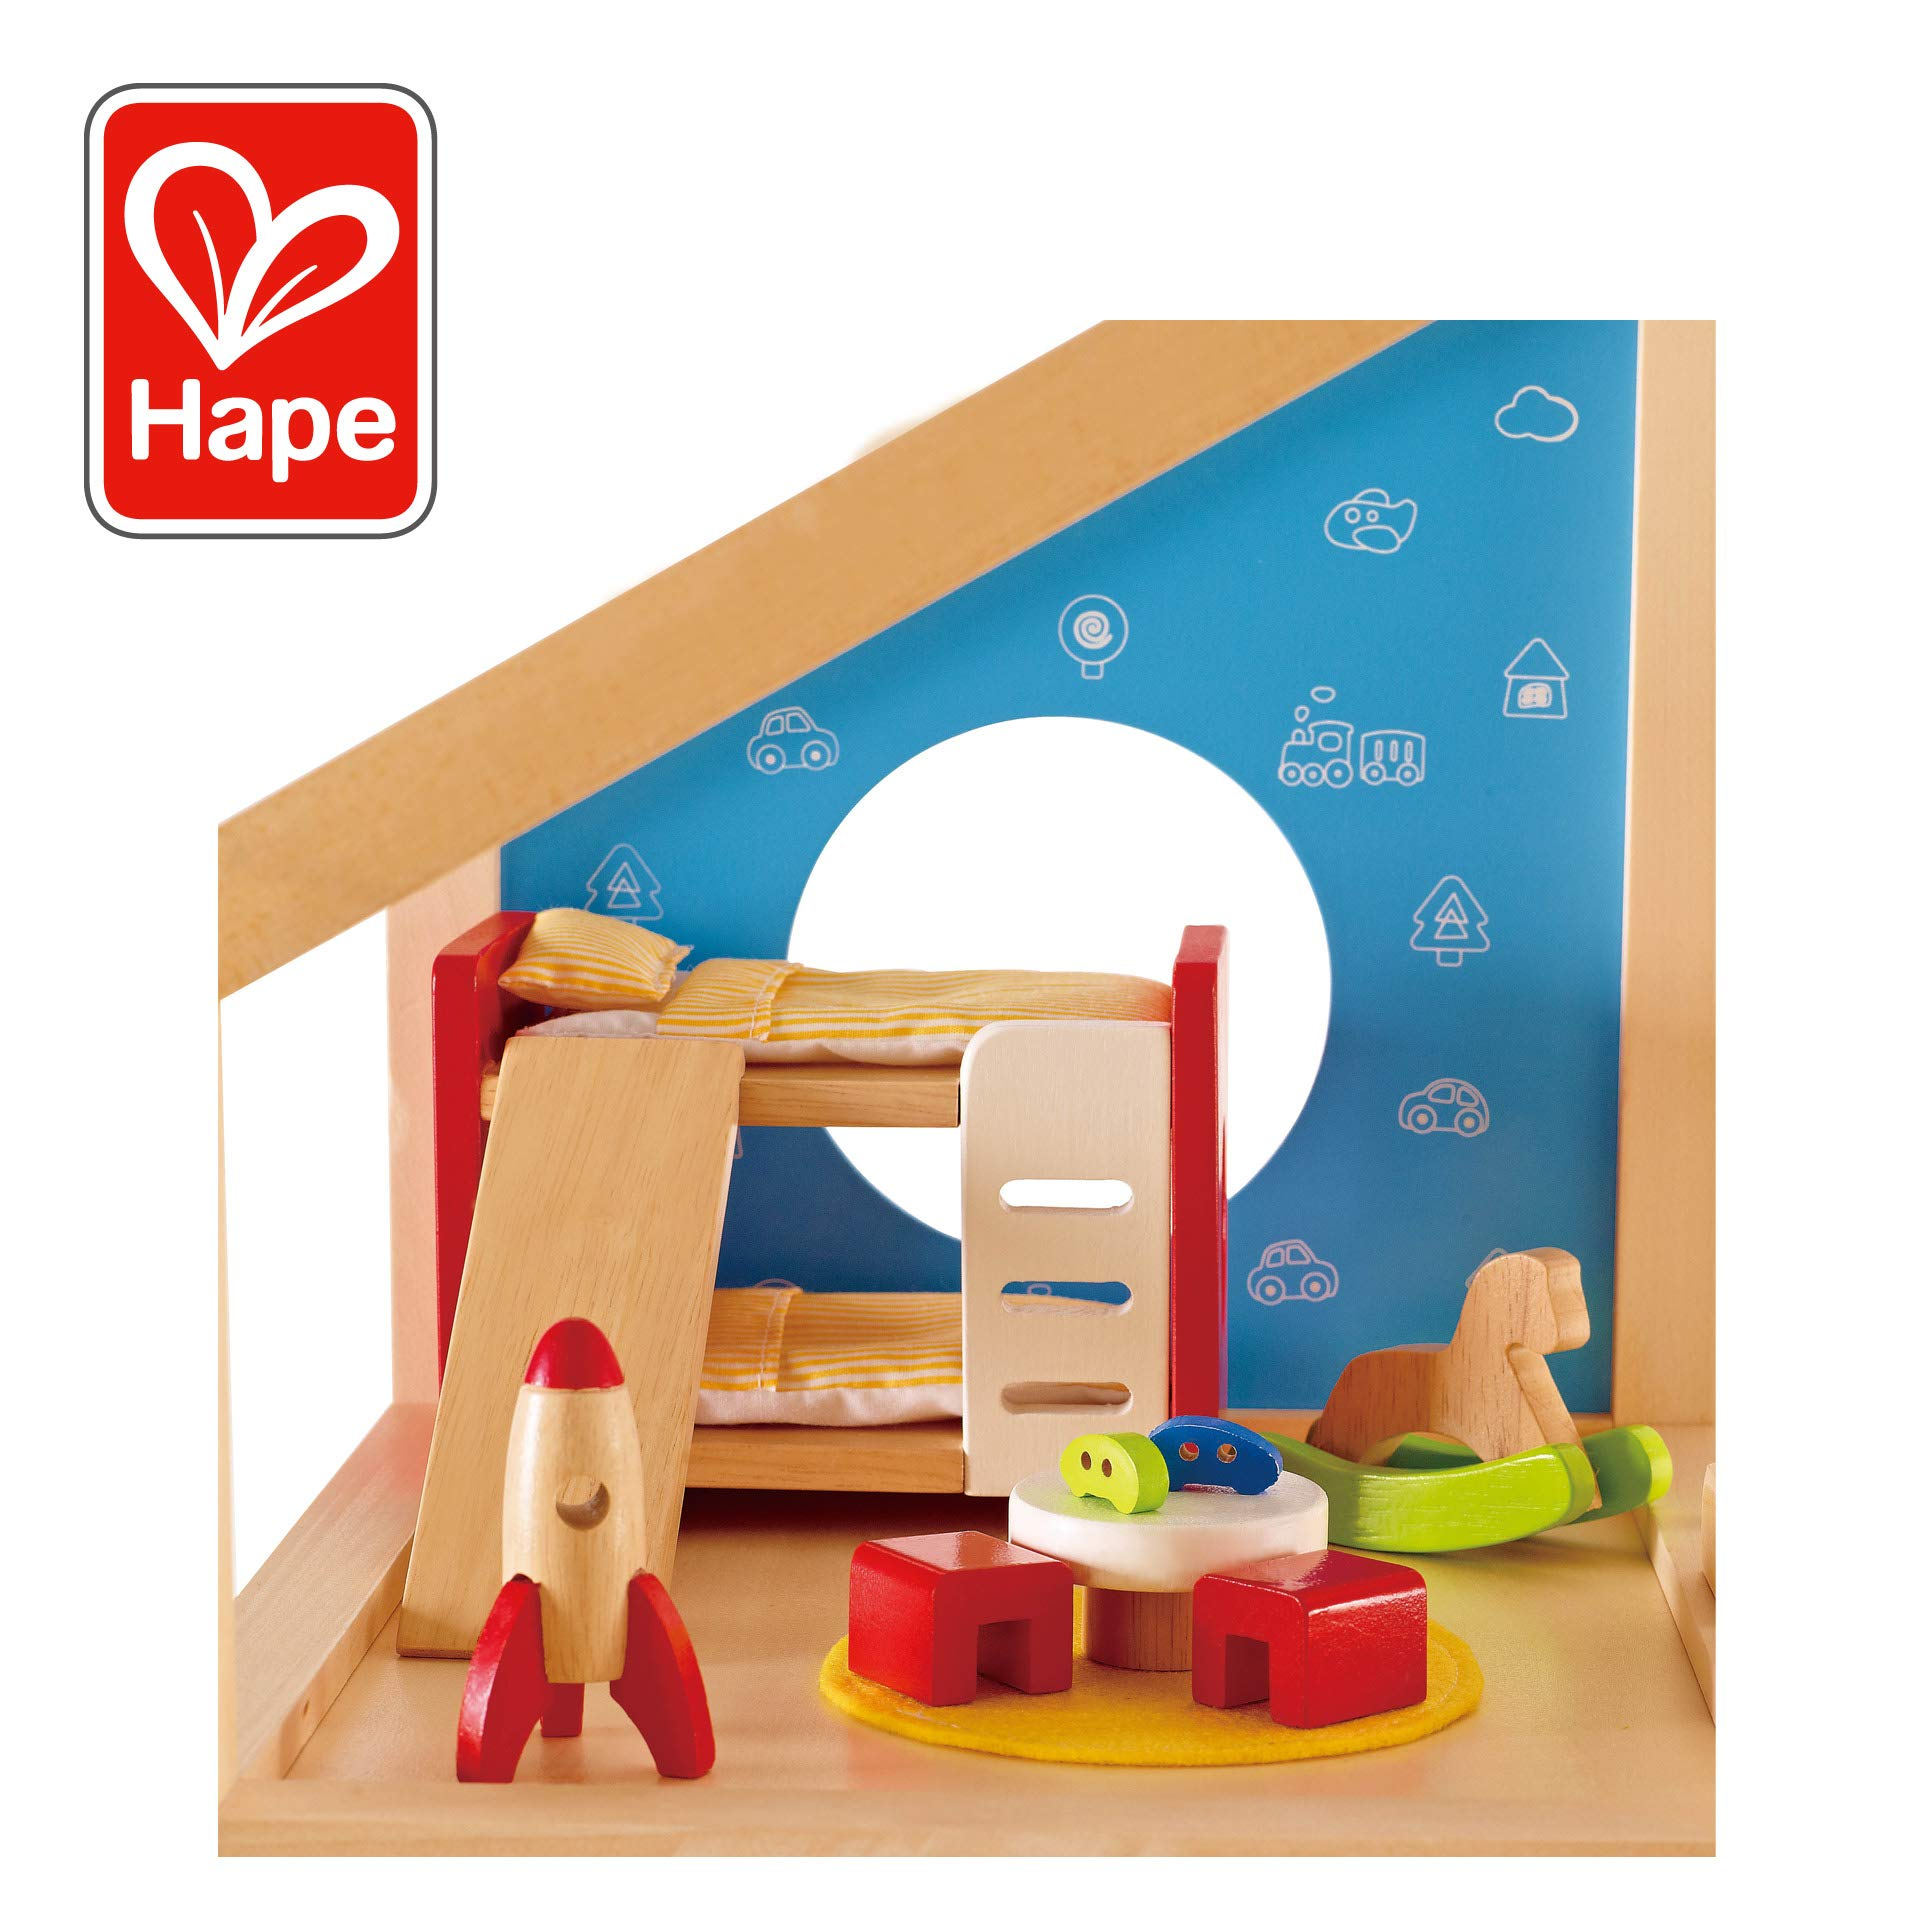 Hape Wooden Doll House Furniture Children's Room with Accessories by Hape